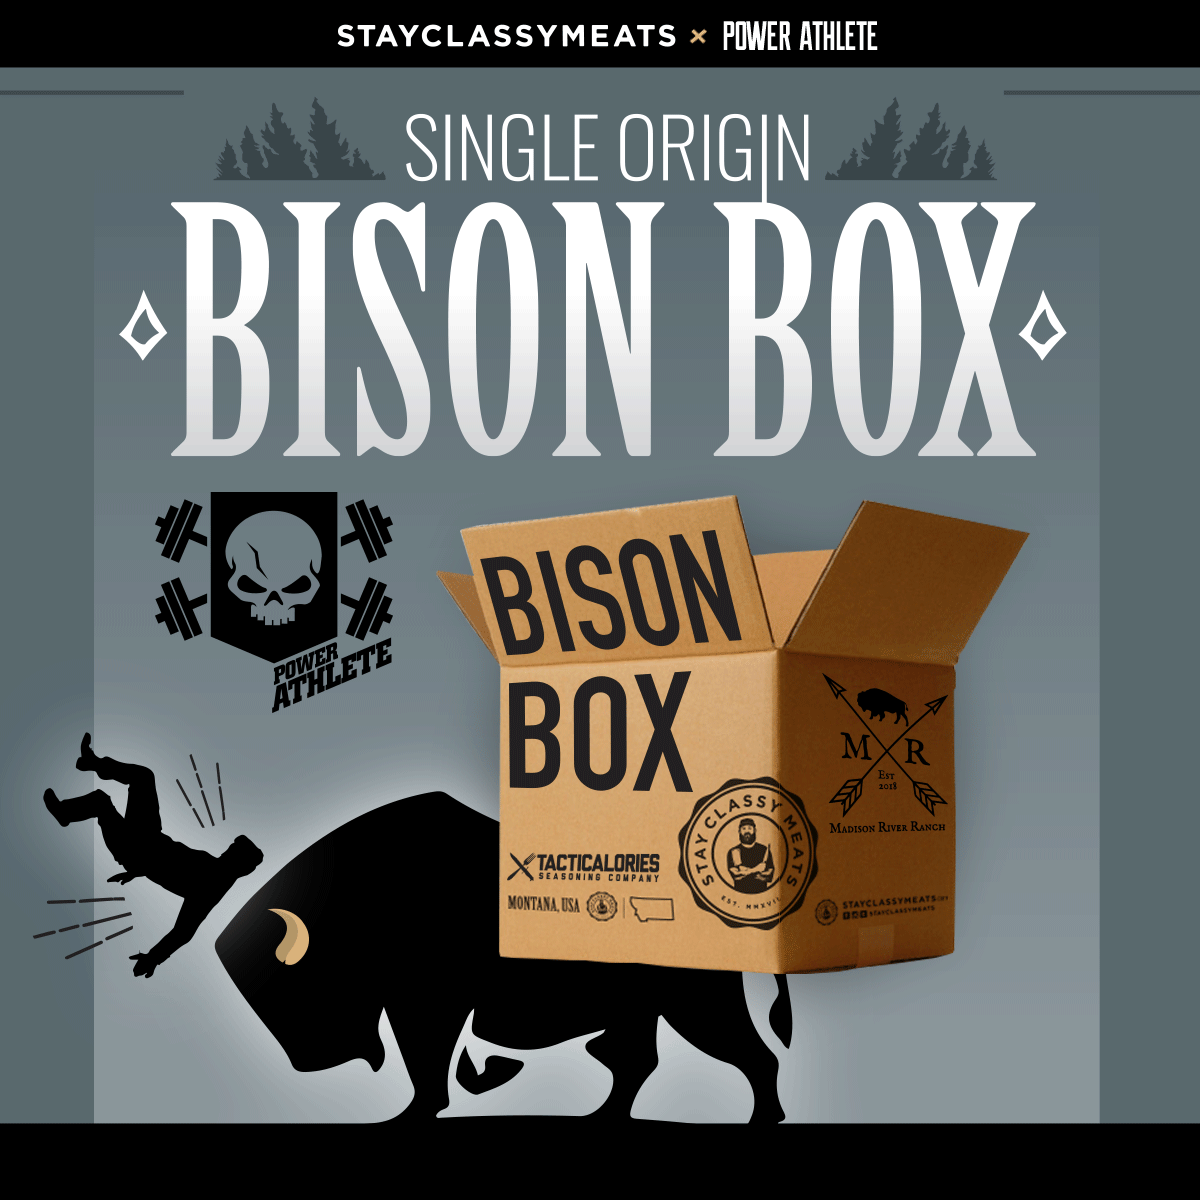 Stay Classy Meats x Power Athlete - Single Source Bison Box